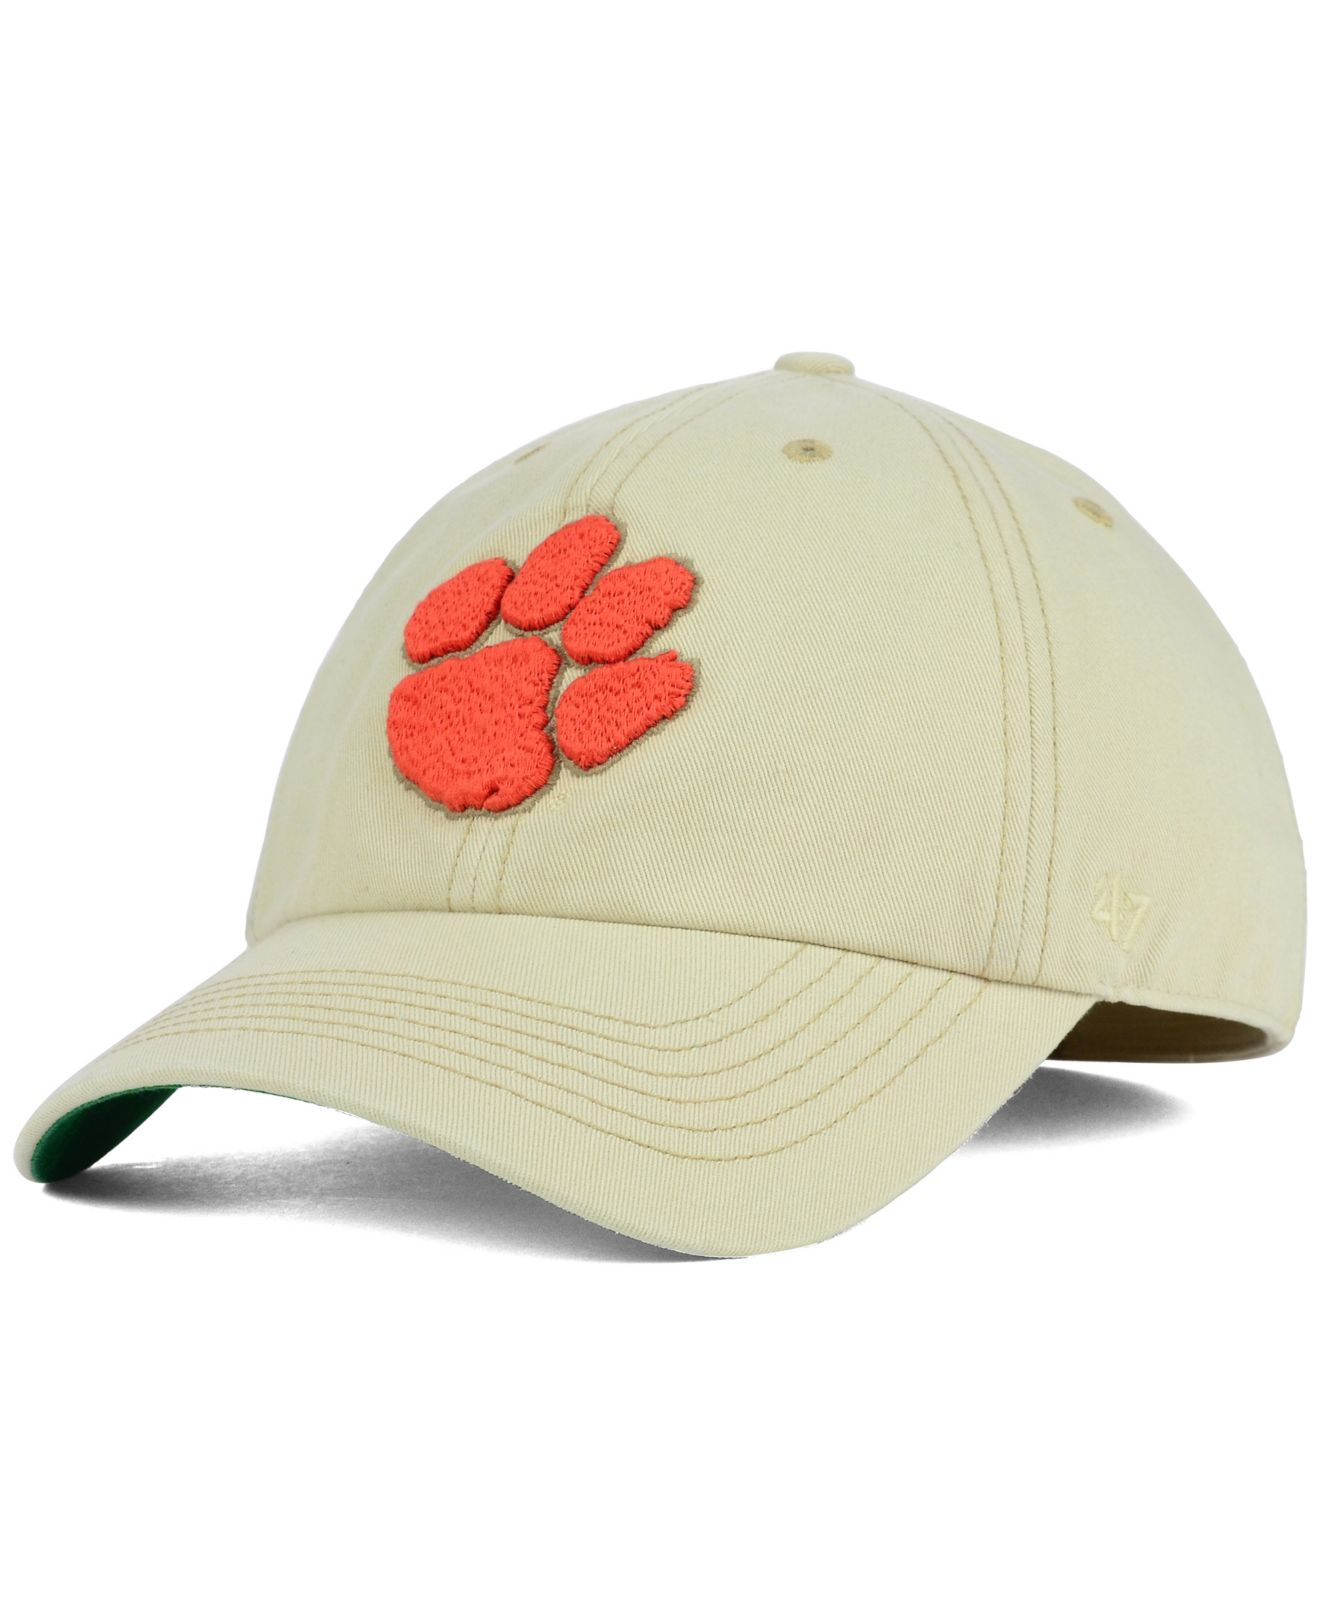 7a0faa19aad7c ... hat cap dded4 a4d50 order lyst 47 brand clemson tigers franchise cap in  natural for men 14fbe 3f3f5 ...